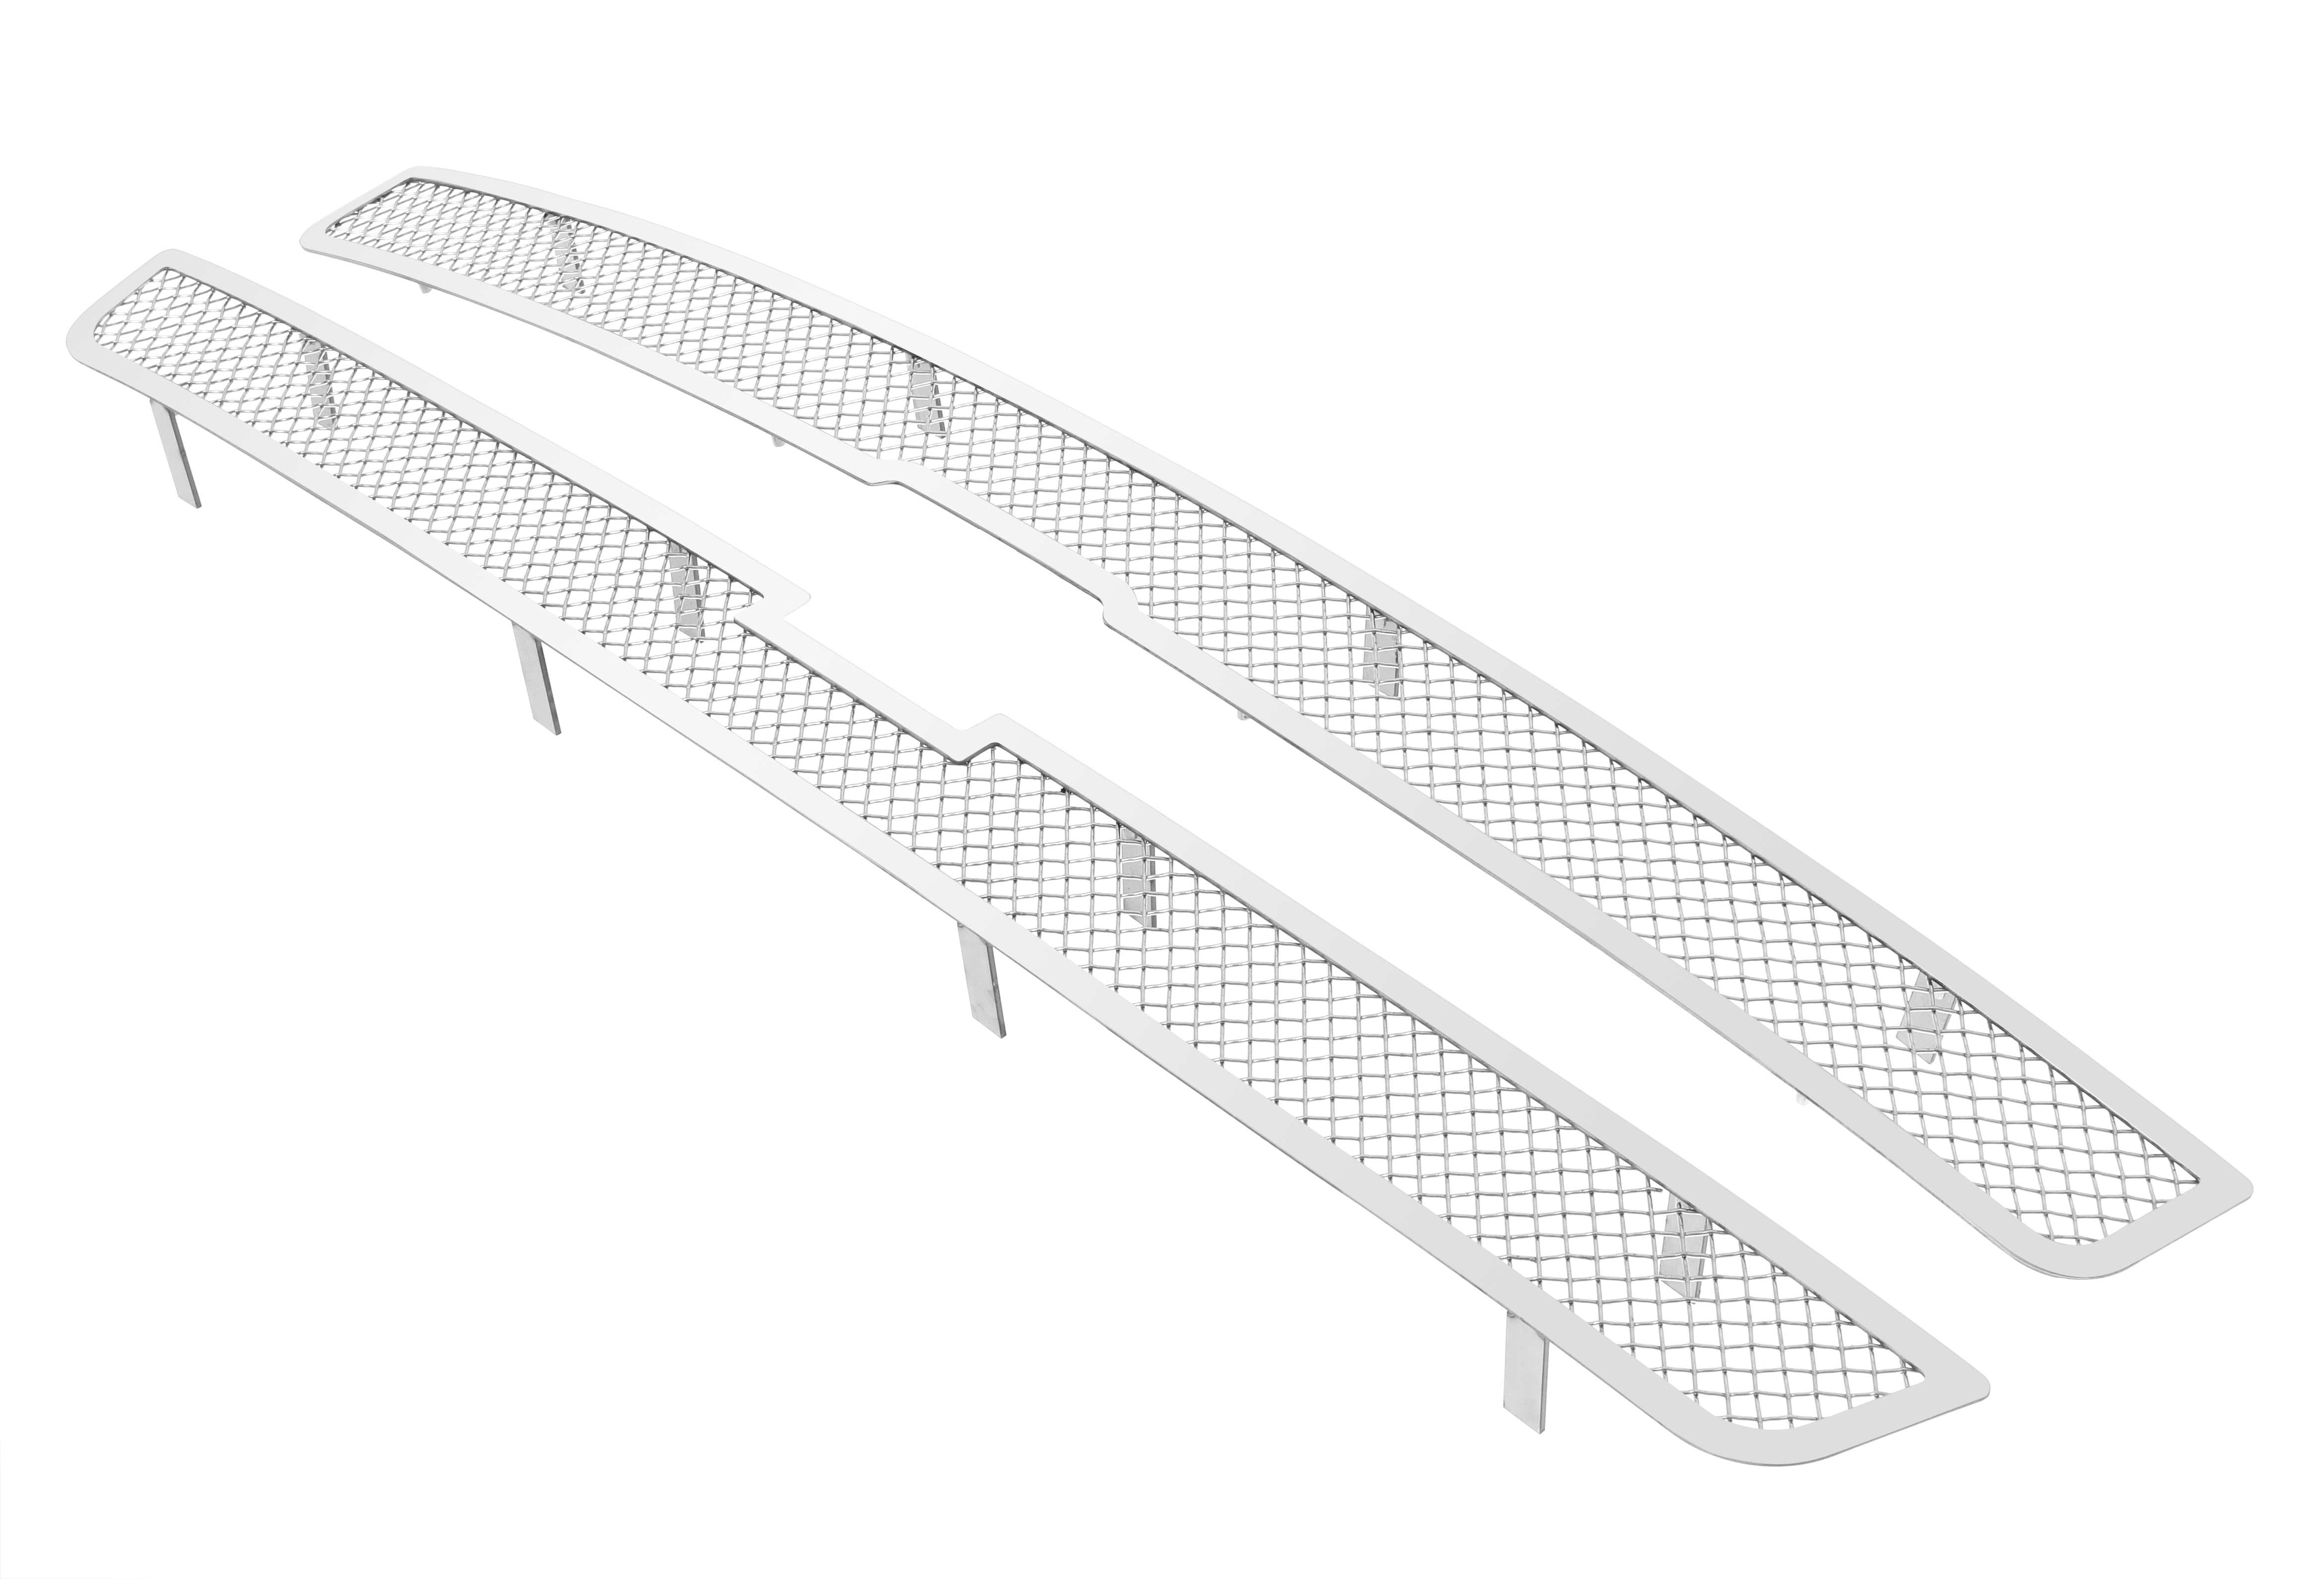 1999-2002 Chevy Silverado 1500 /2000-2006 Chevy Suburban /2000-2006 Chevy Tahoe MAIN UPPER Wire Mesh Grille